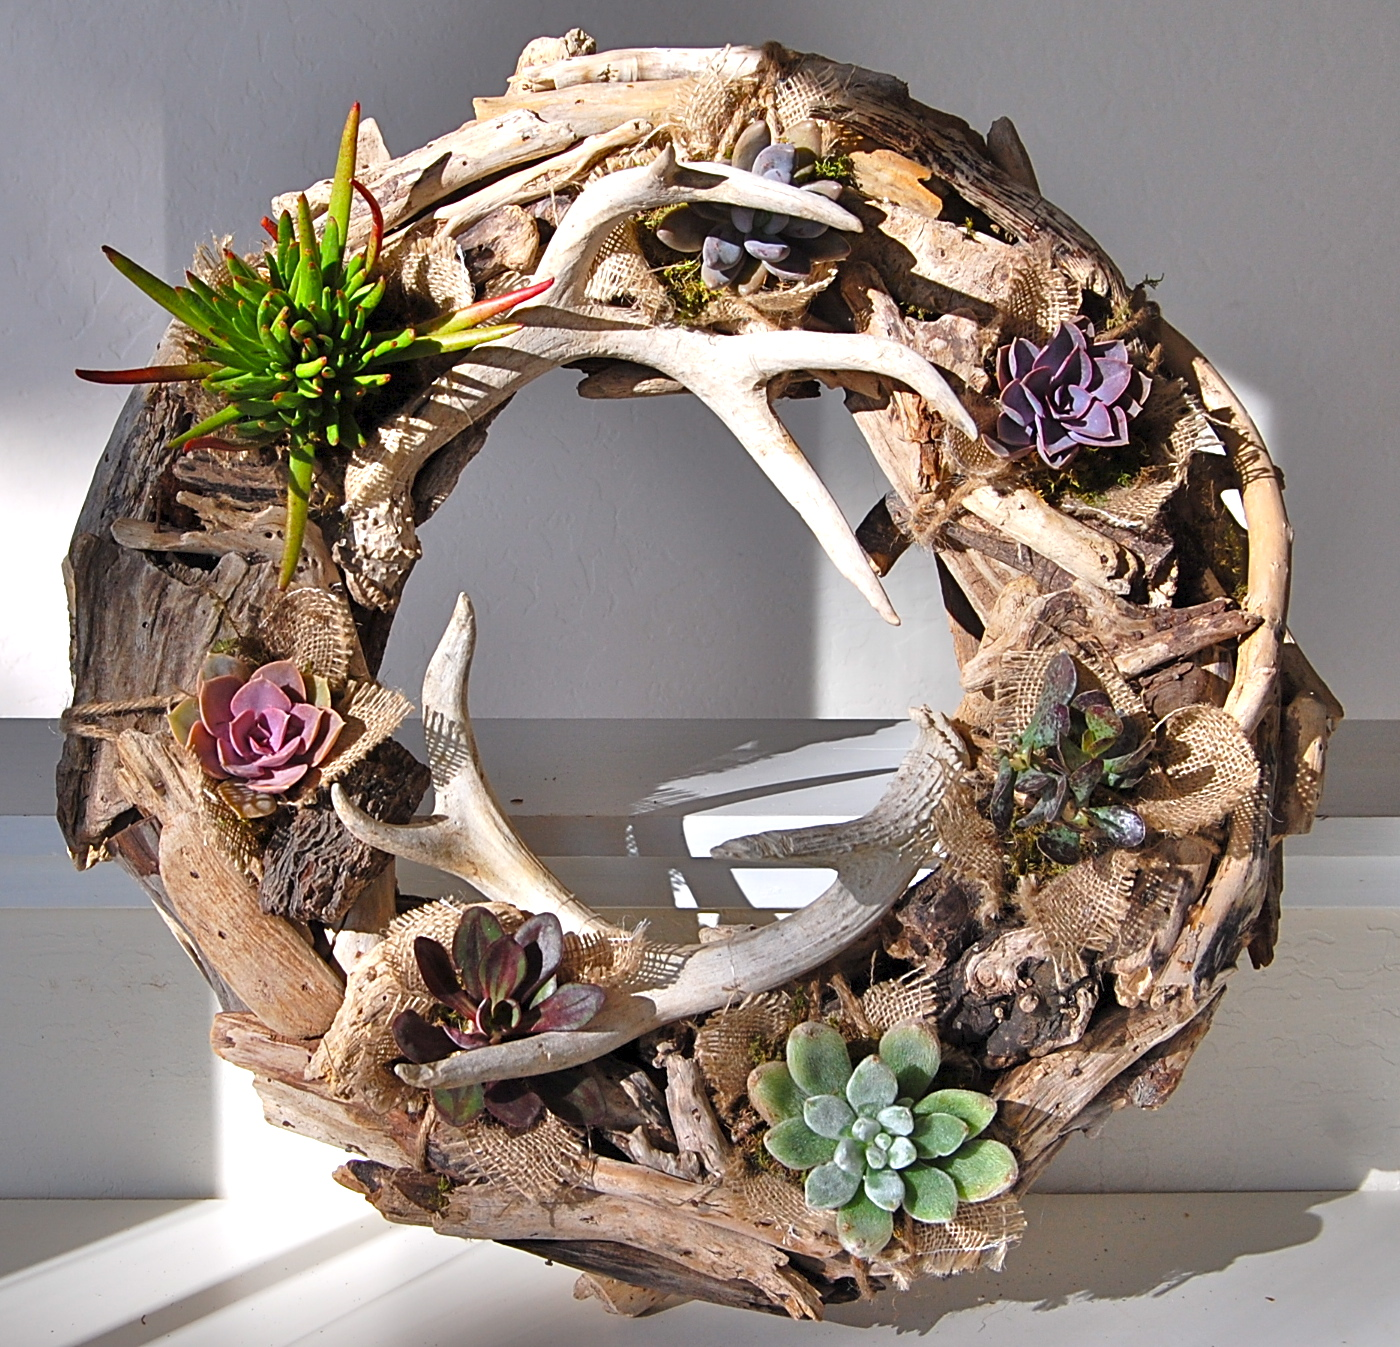 Replanted Existing Driftwood Wreath, Adding A Touch Of Burlap And Deer Antlers For Drama